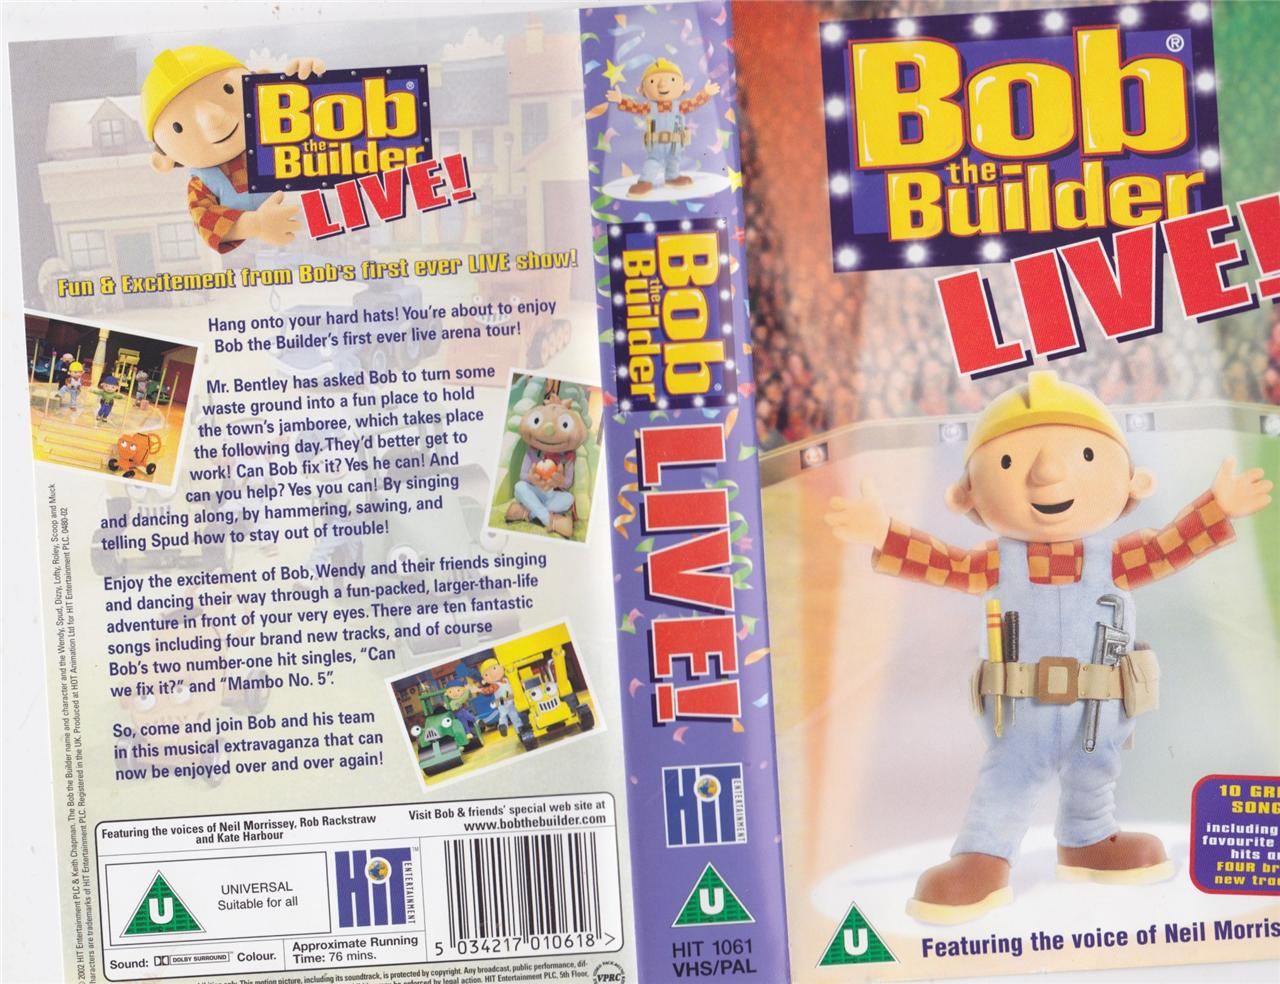 Bob The Builder Bob Live Vhs Video Pal A Rare Find Ebay: where to find a builder